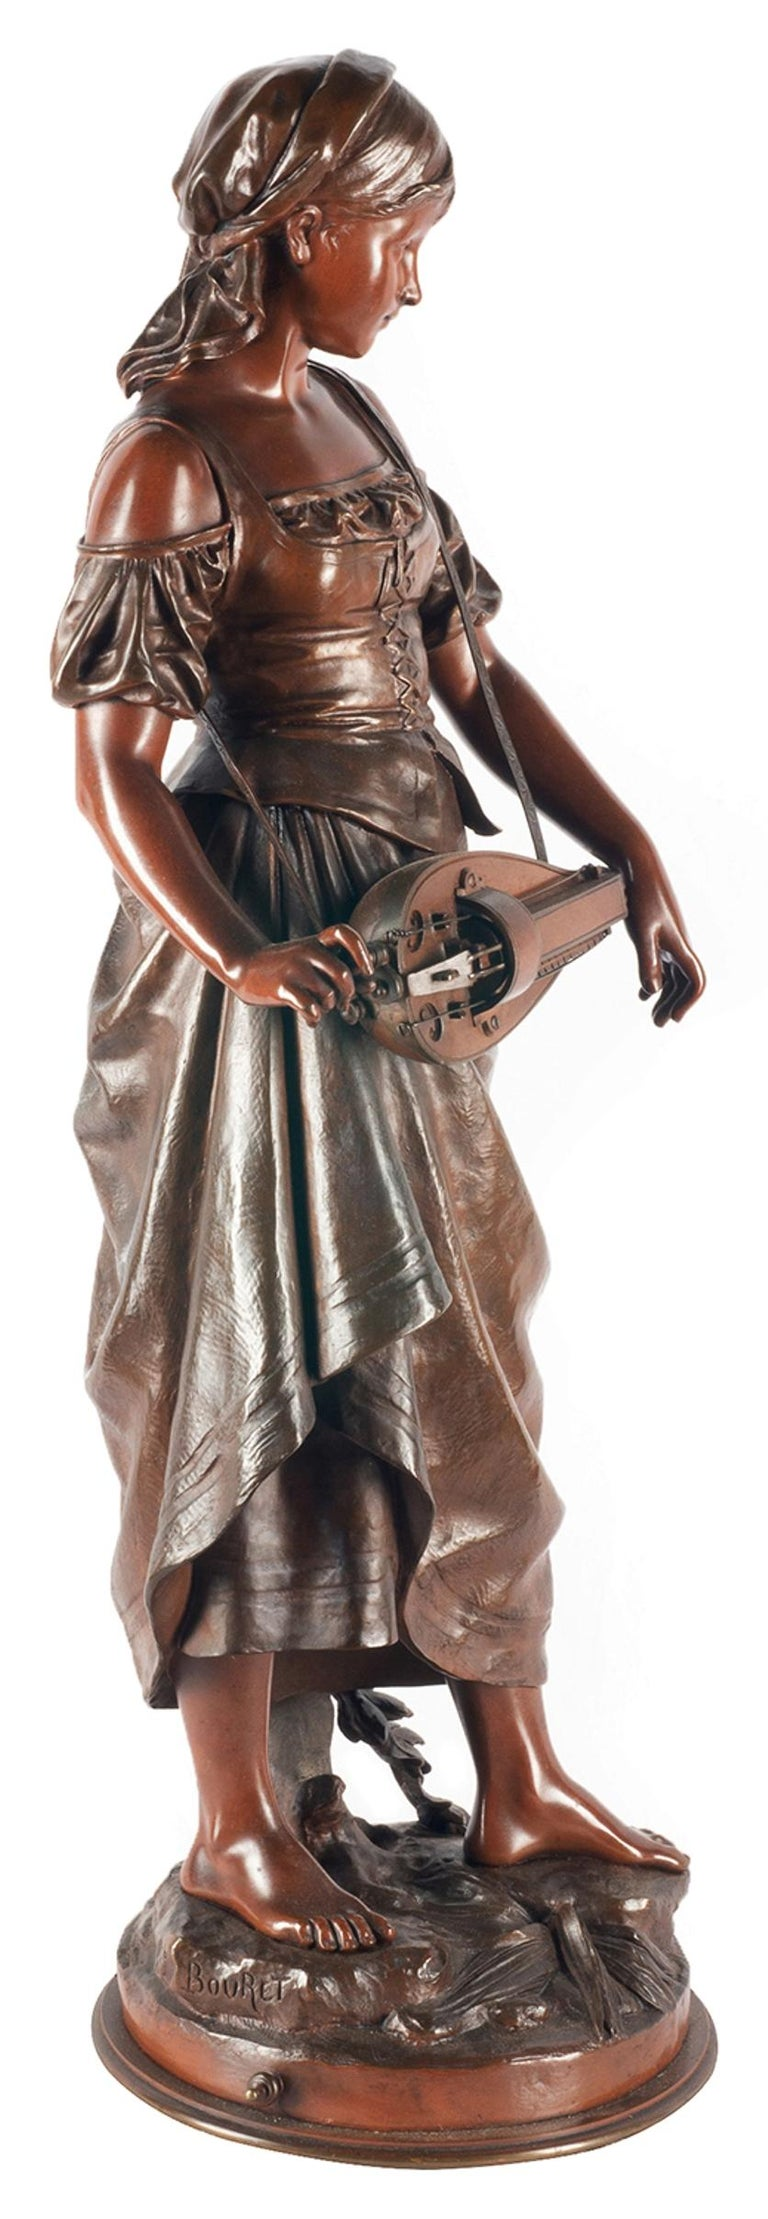 Eutrope Bouret Bronze Statue of Gypsy Girl Musician In Good Condition For Sale In Brighton, Sussex